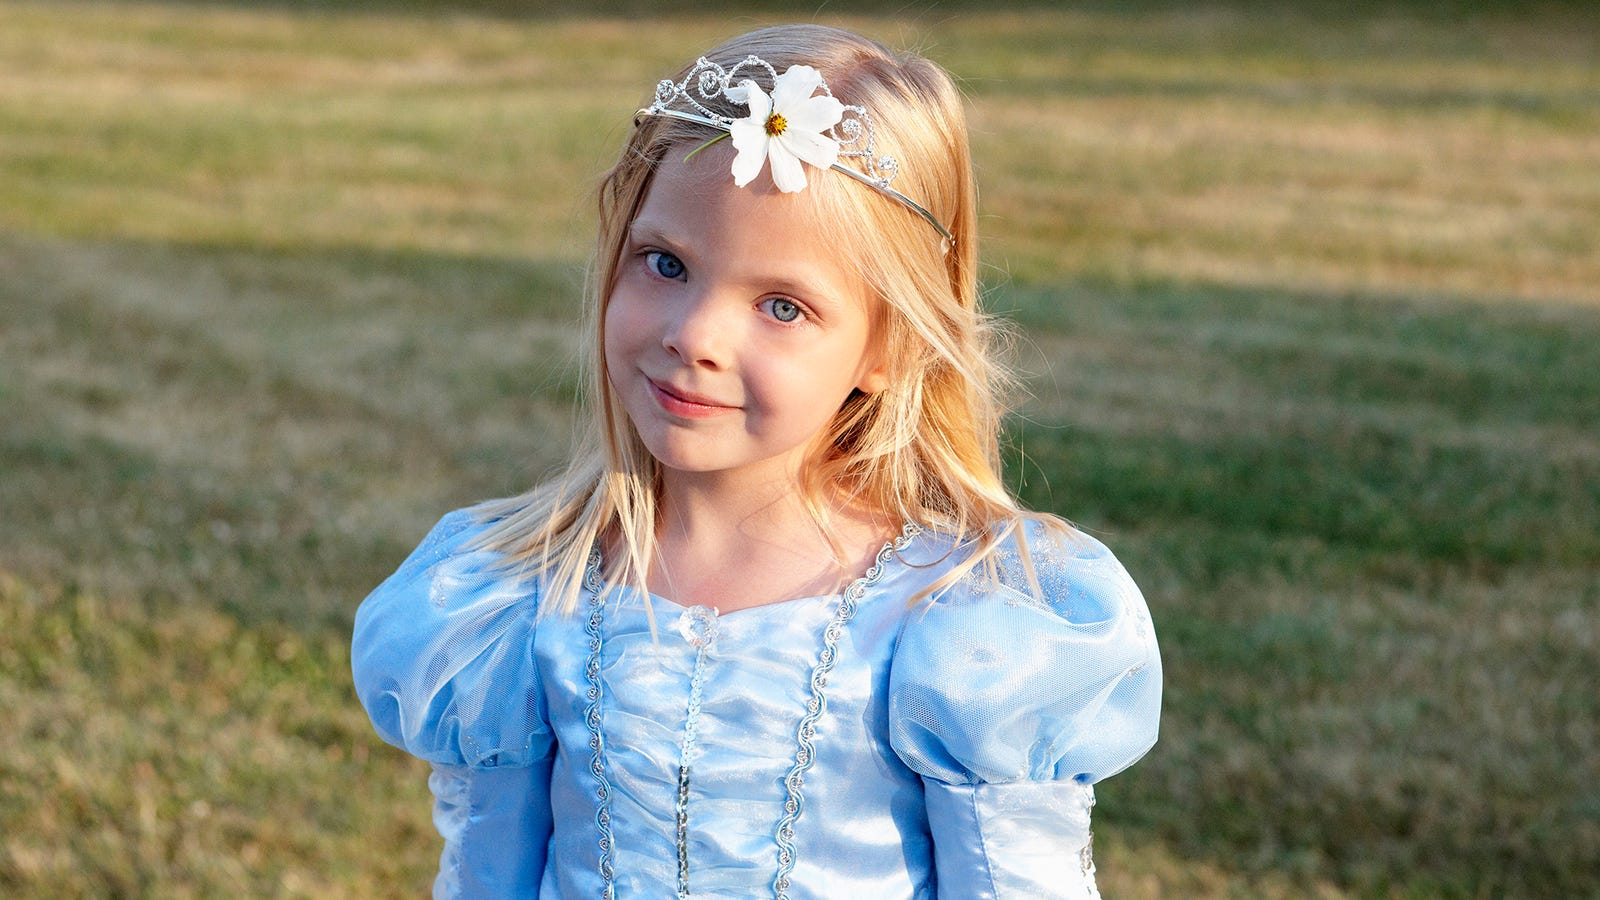 Study Reveals That Girls Who Play Princess Grow Up With Skewed Perceptions Of The Role Of Modern Monarchy In A Democratic Society